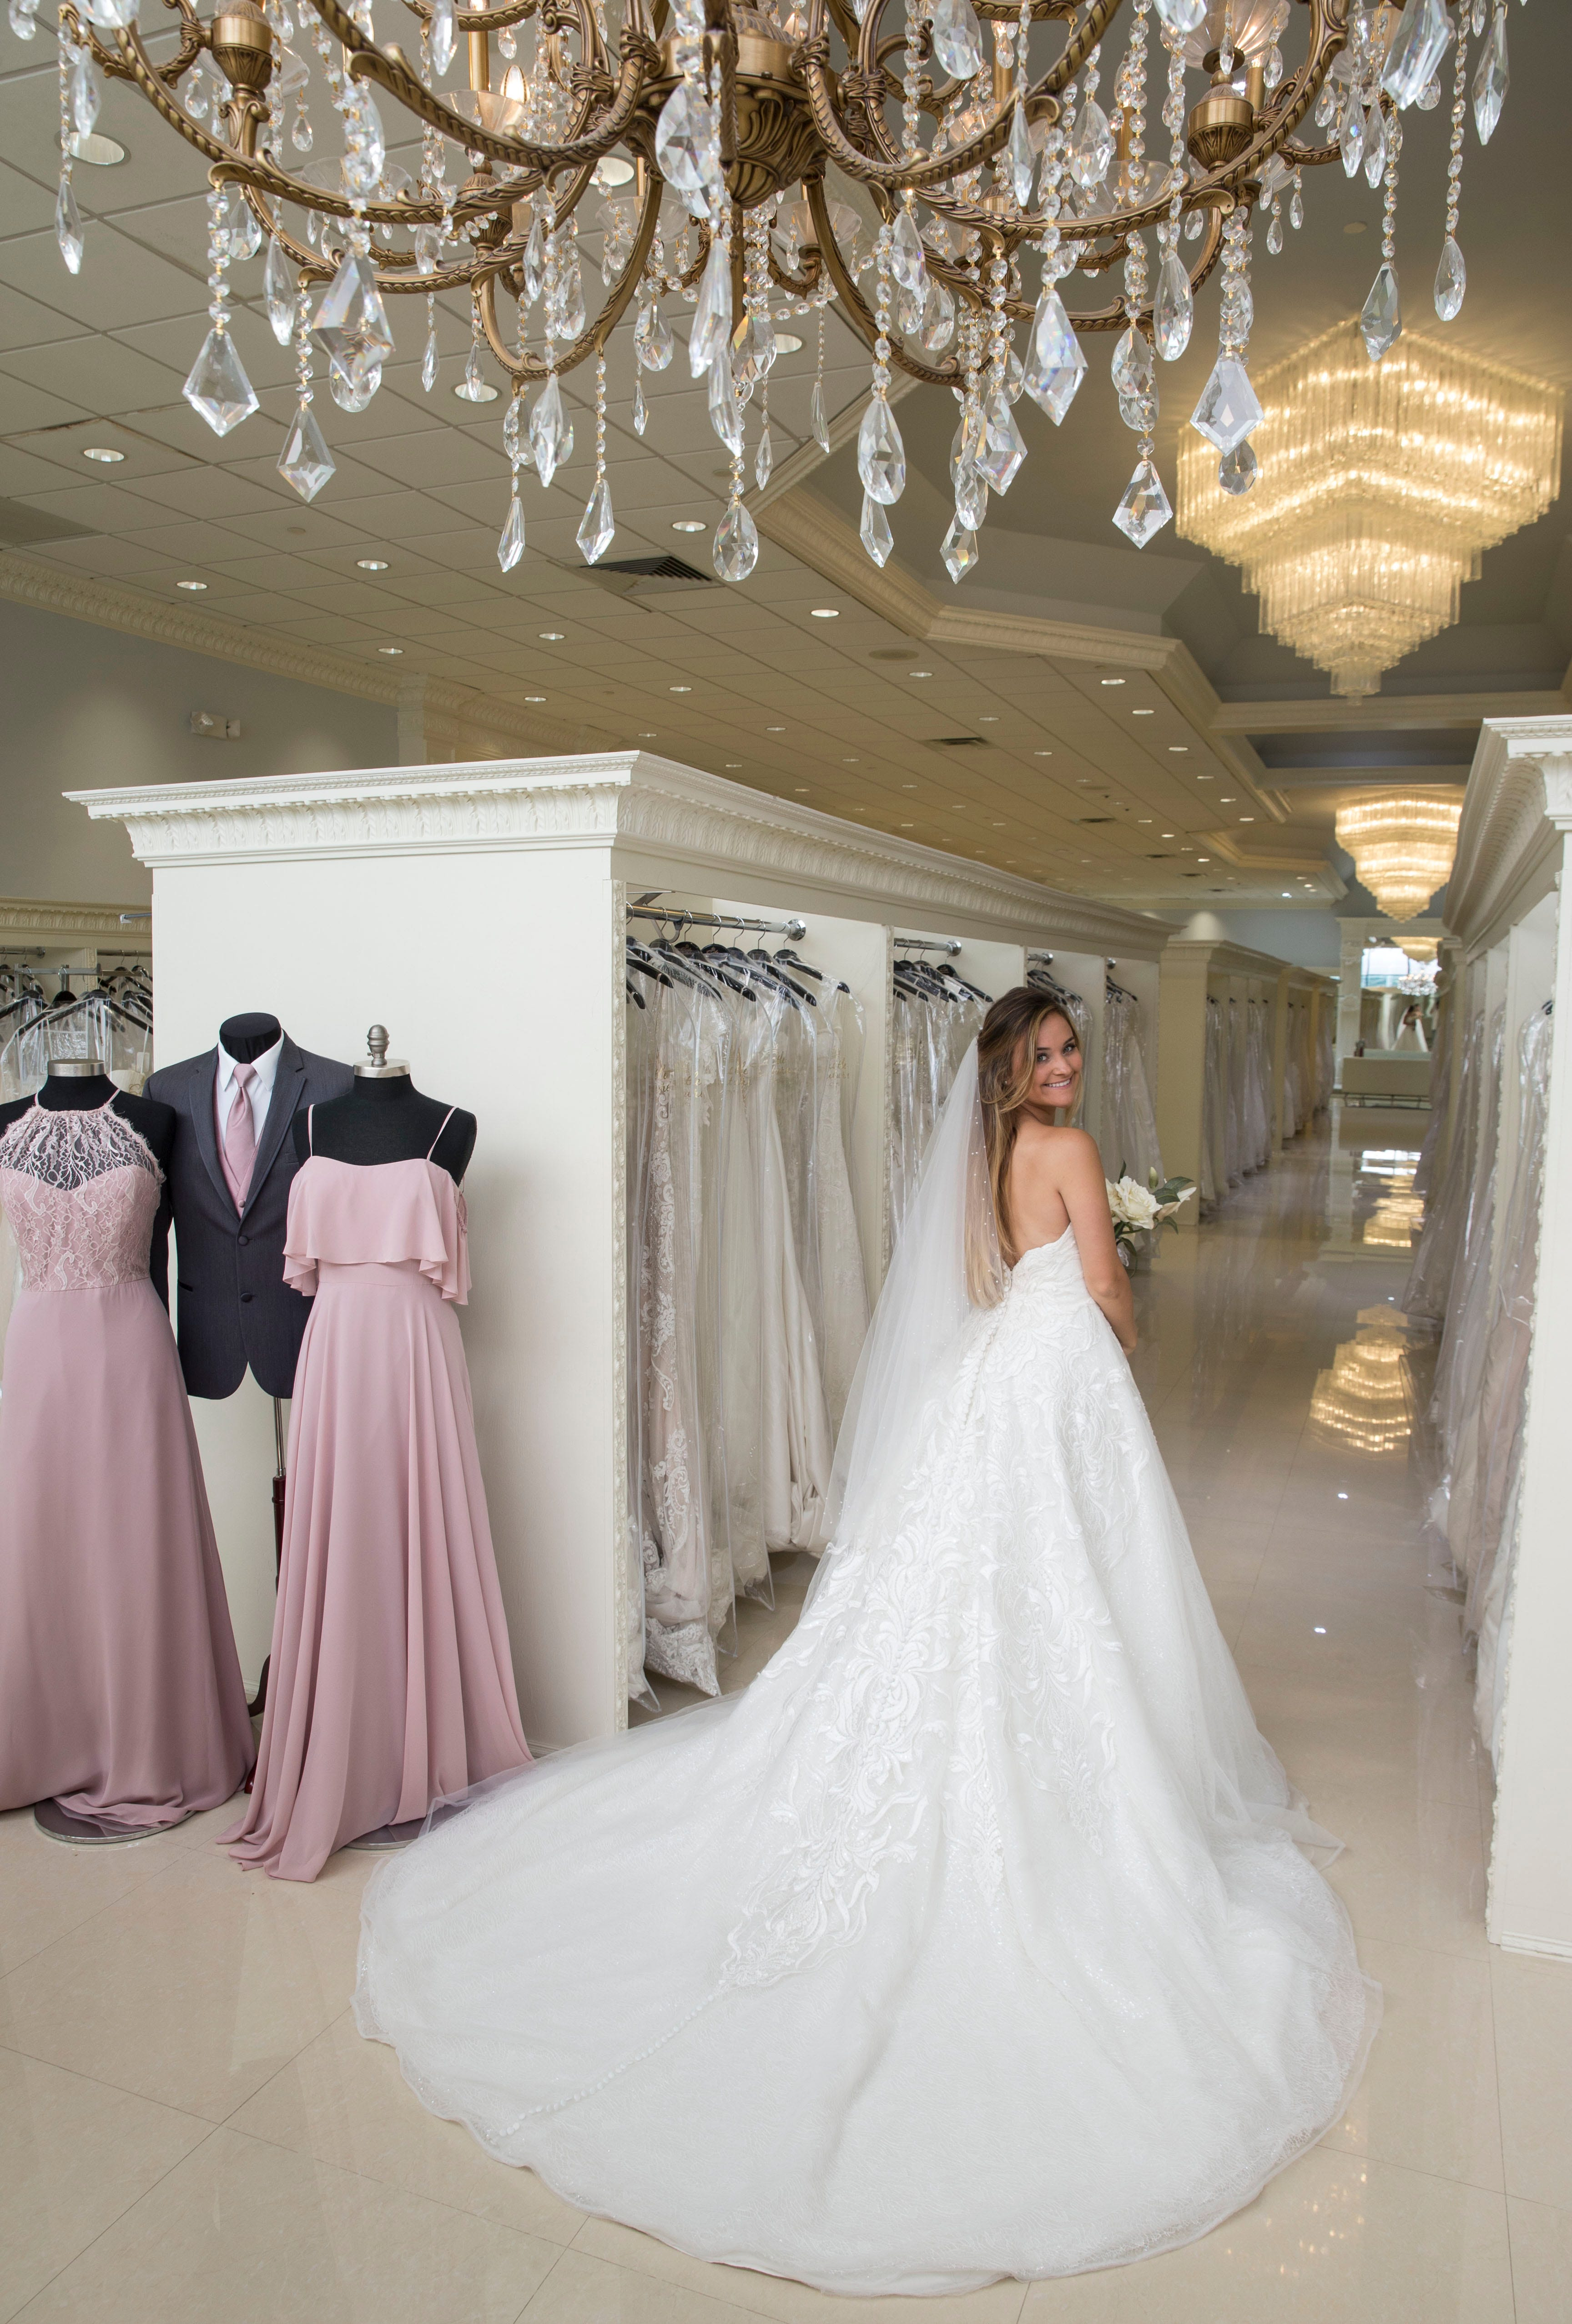 Castle Couture in Manalapan aims to make your wedding a fairy tale